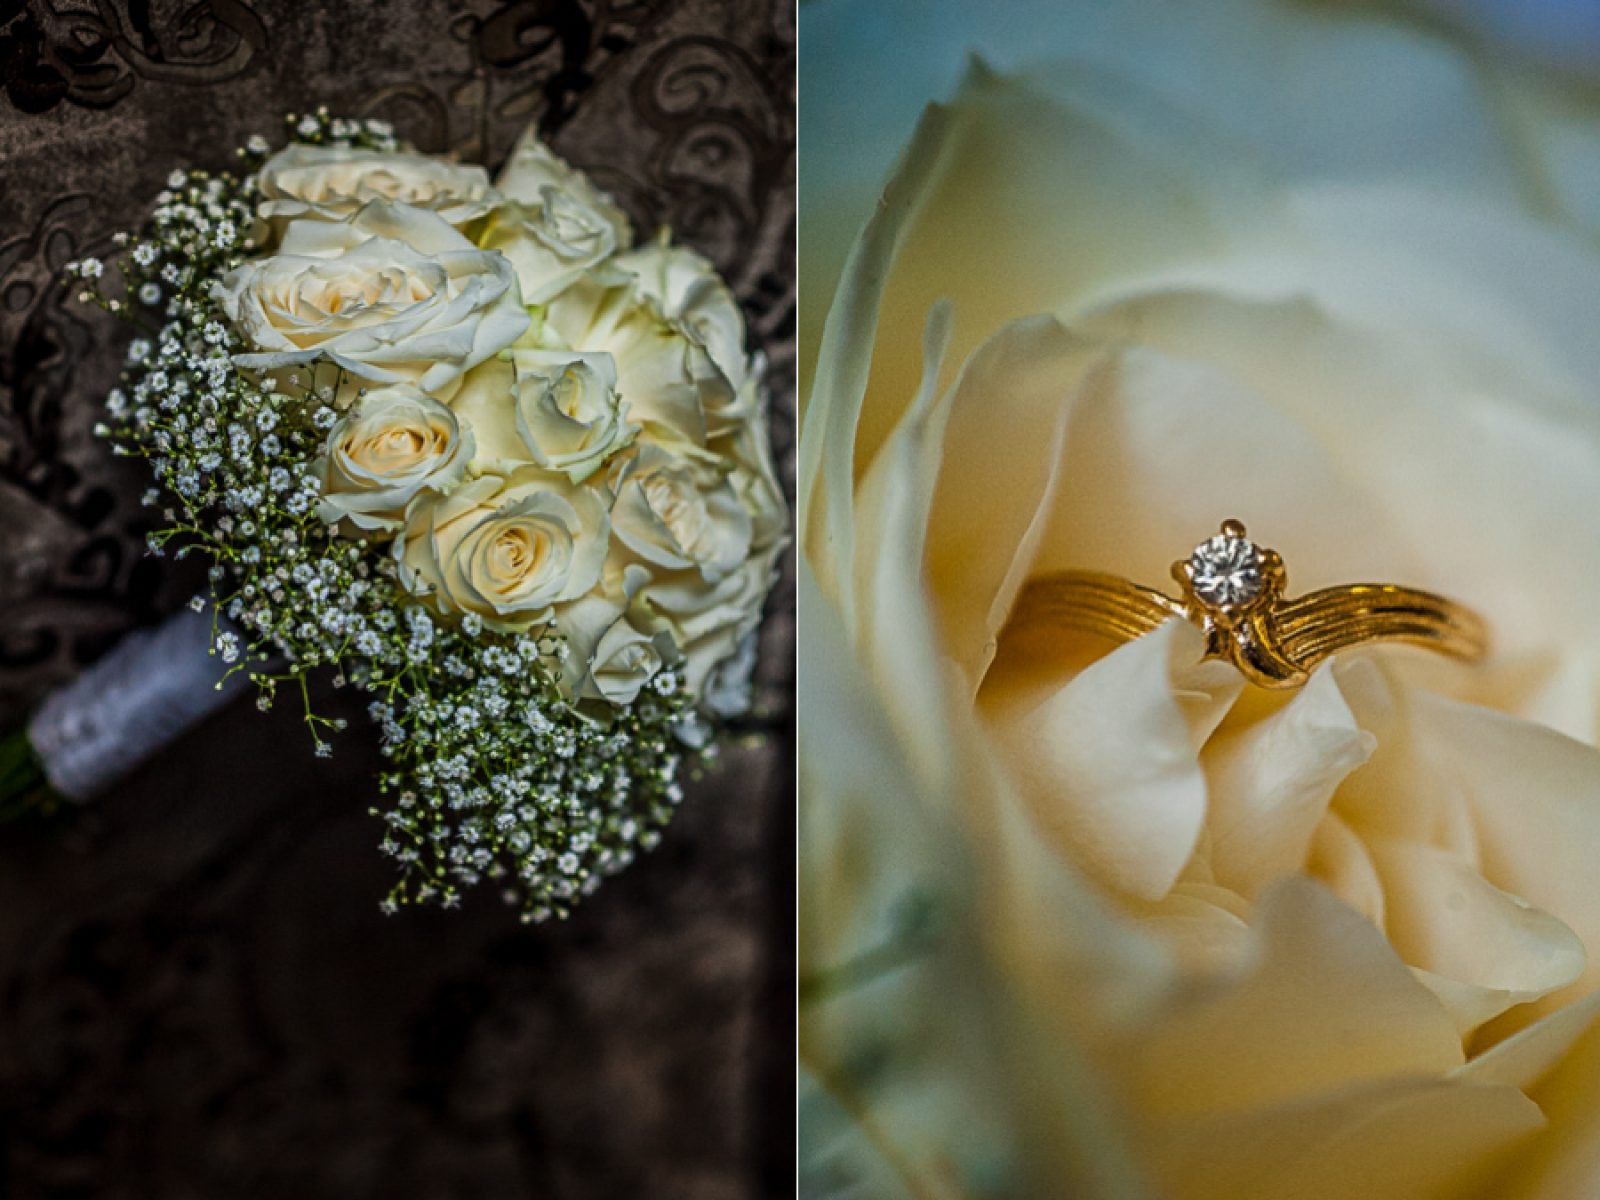 63 1600x1200 - Darshani and Anthony - wedding photographer in London